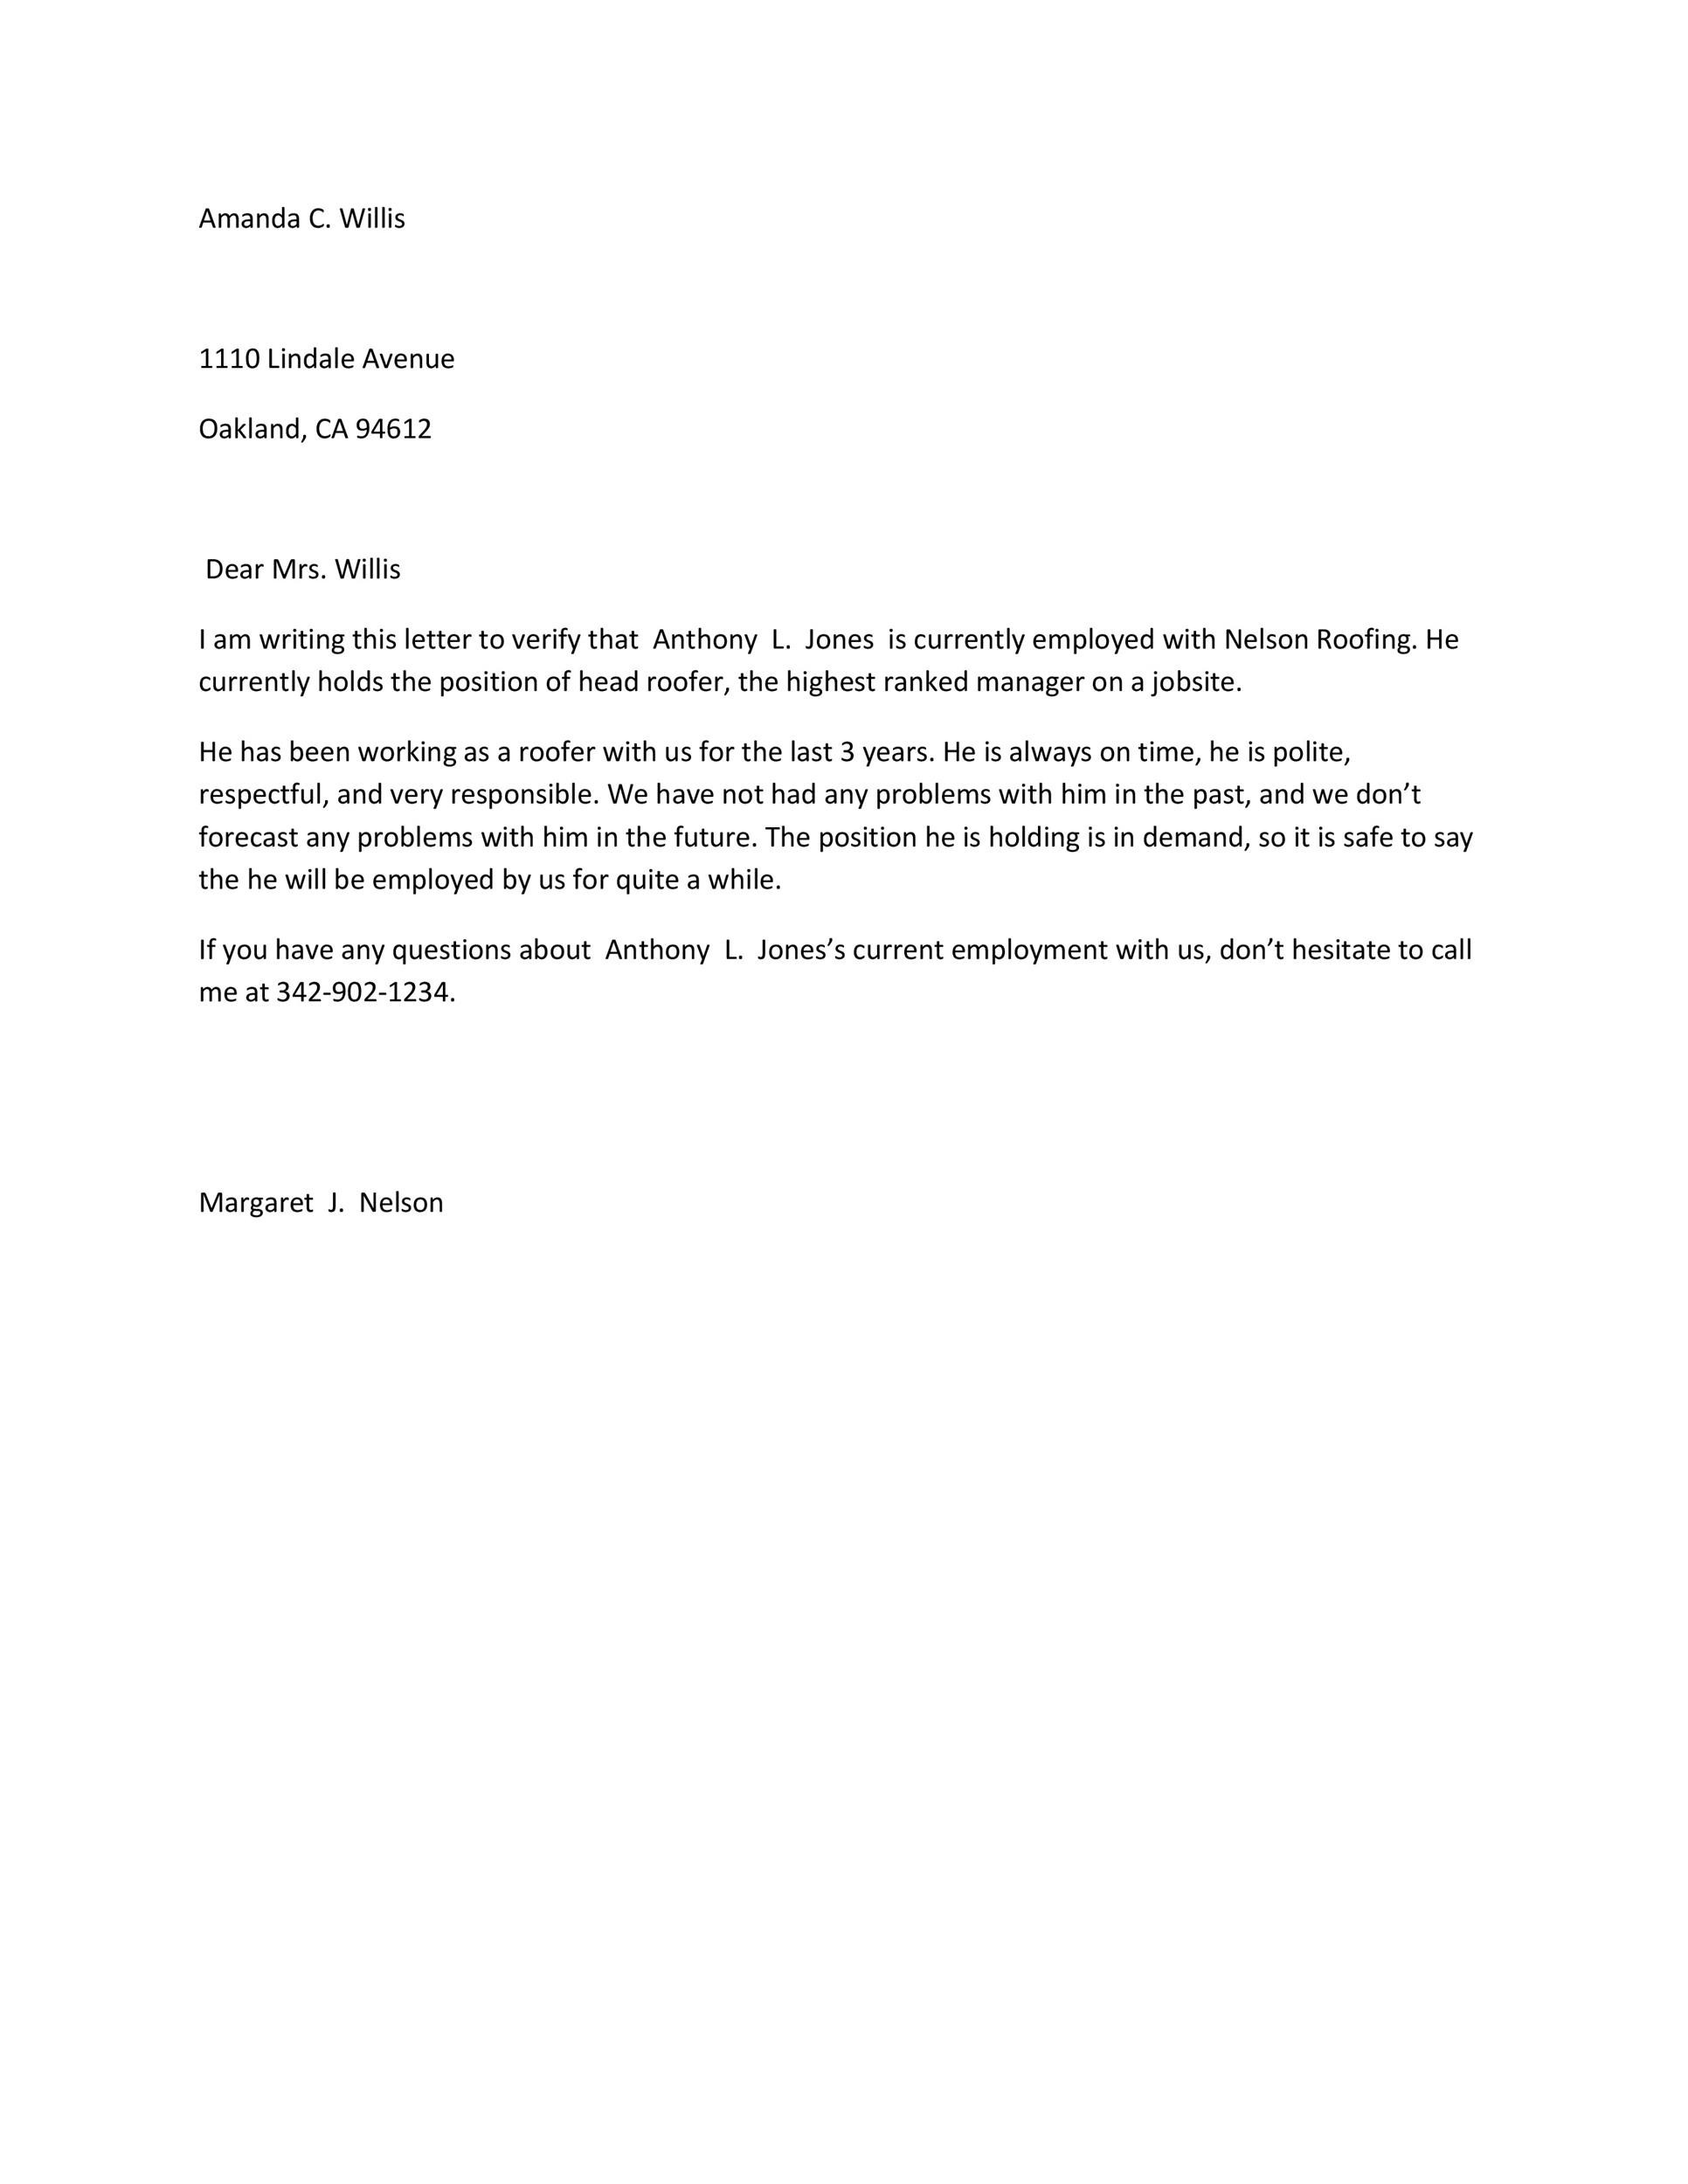 Sample of work certificate letter idealstalist sample thecheapjerseys